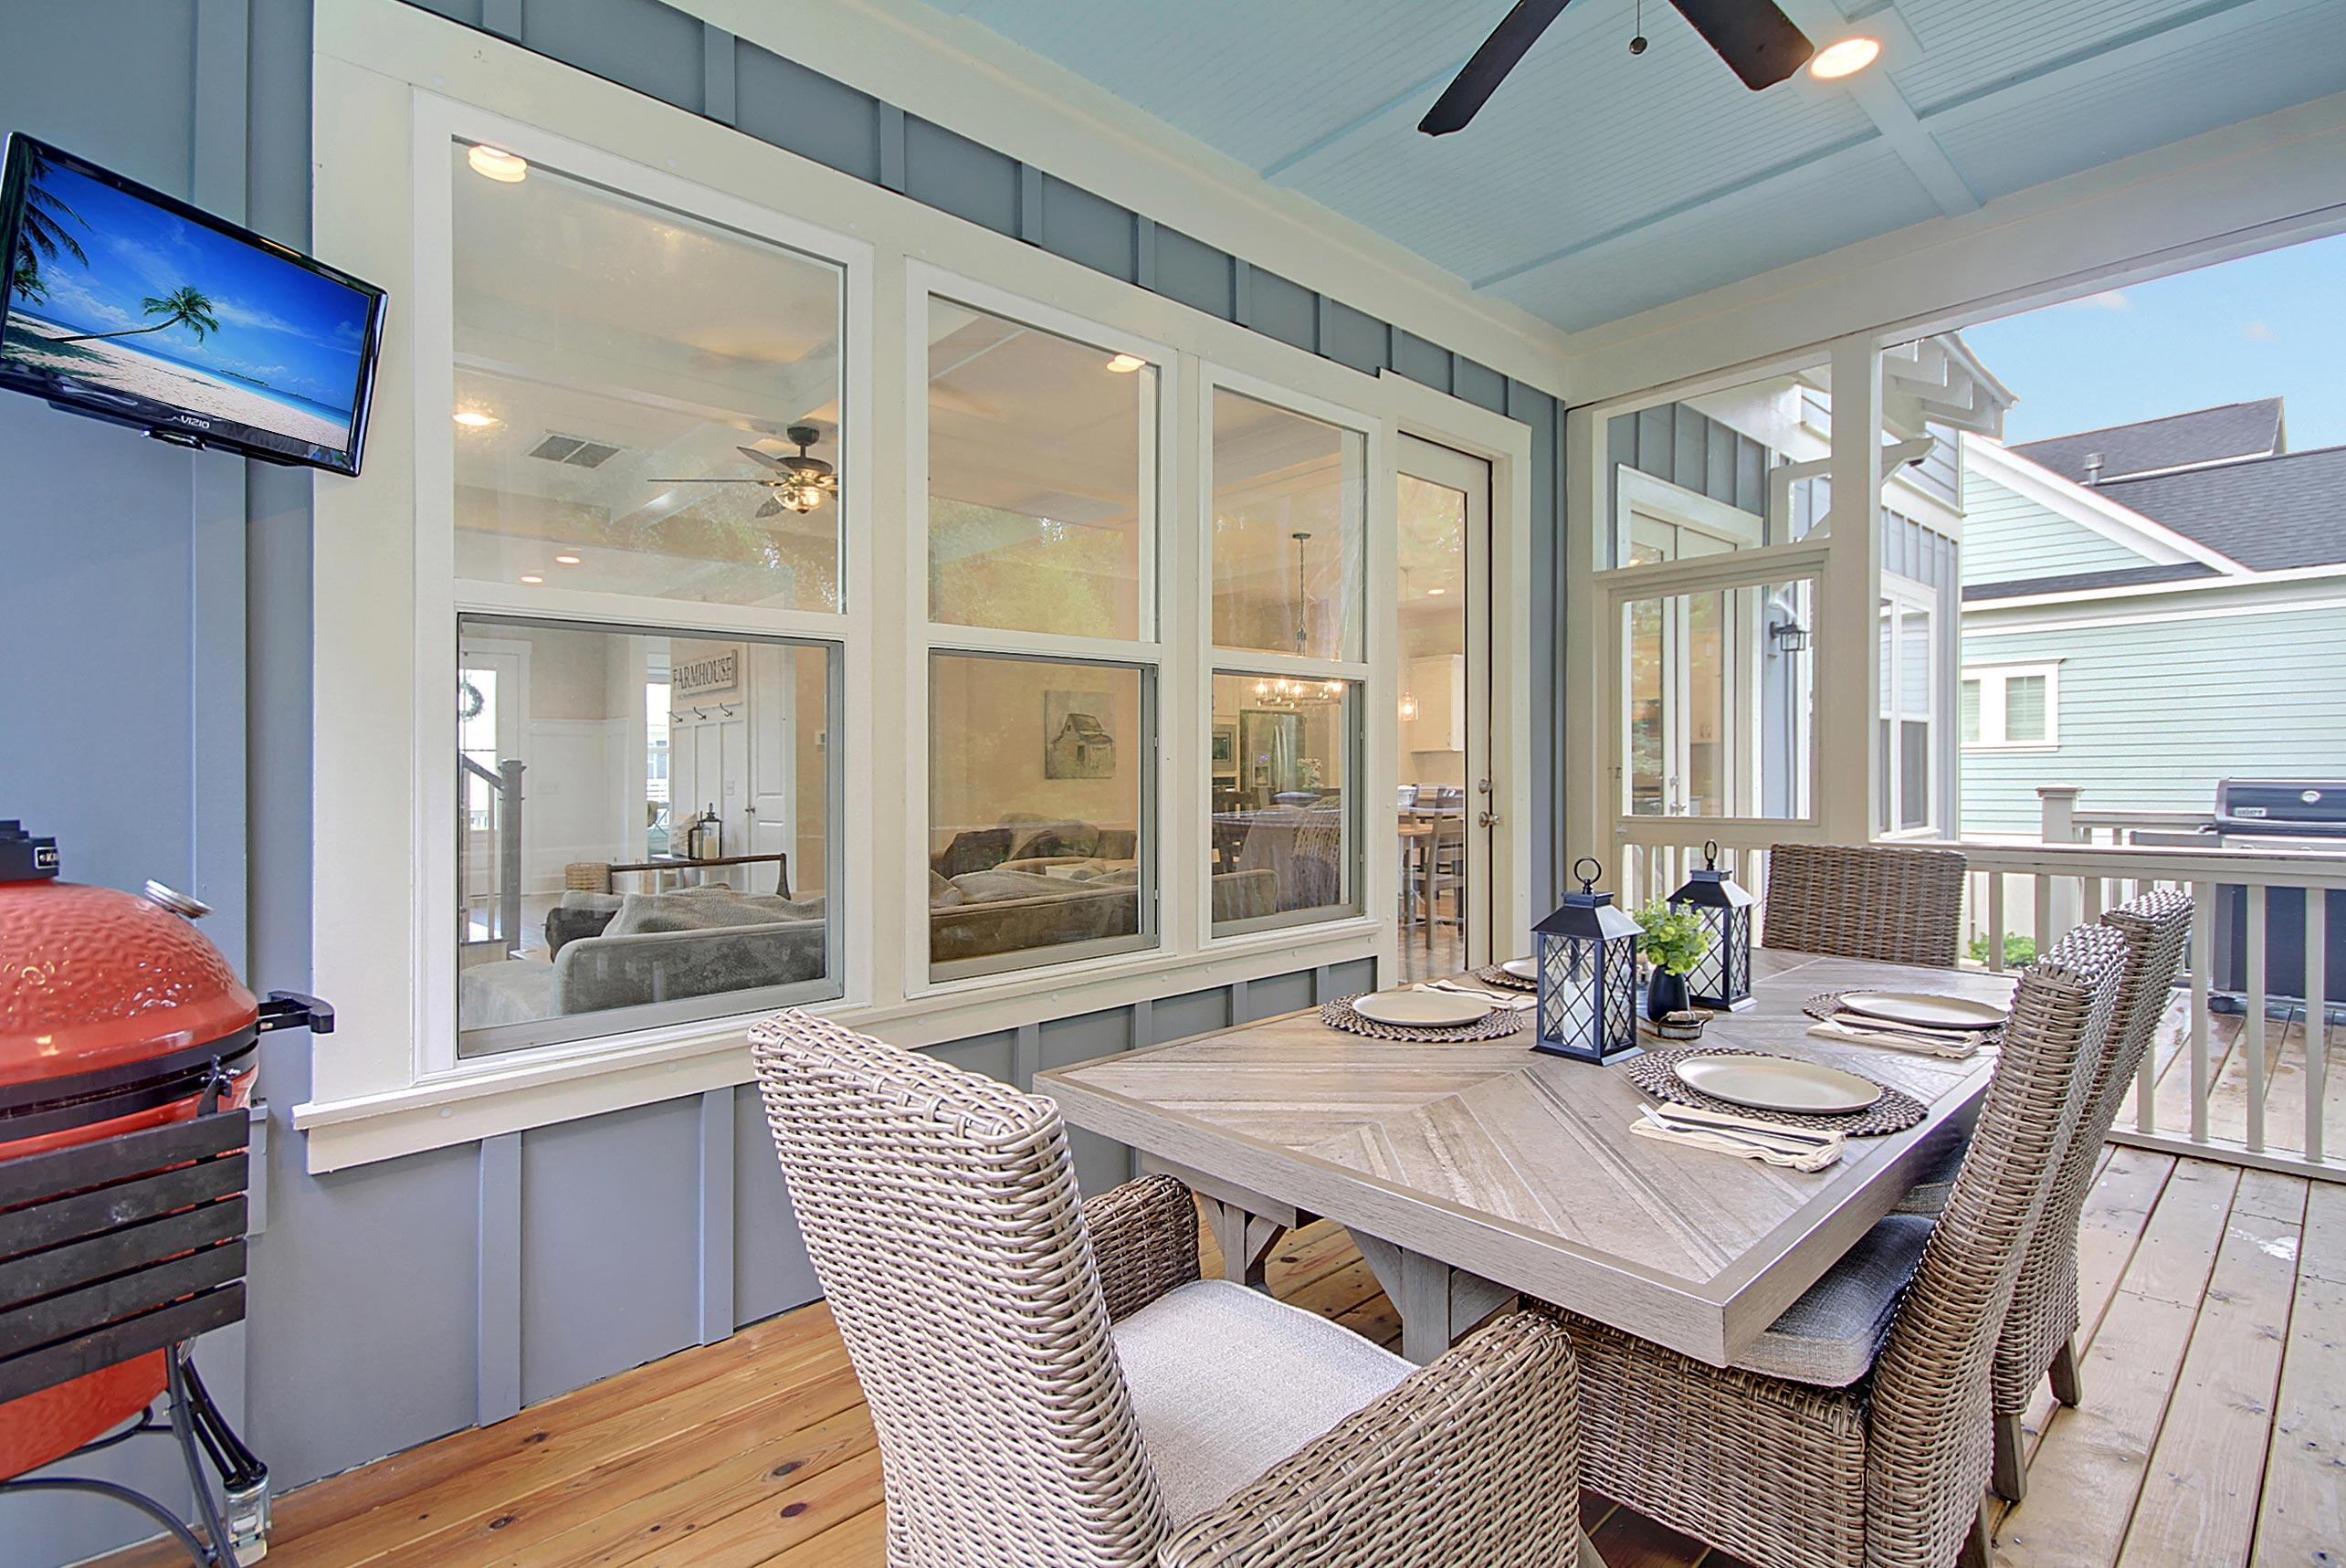 Stratton by the Sound Homes For Sale - 3542 Saltflat, Mount Pleasant, SC - 23